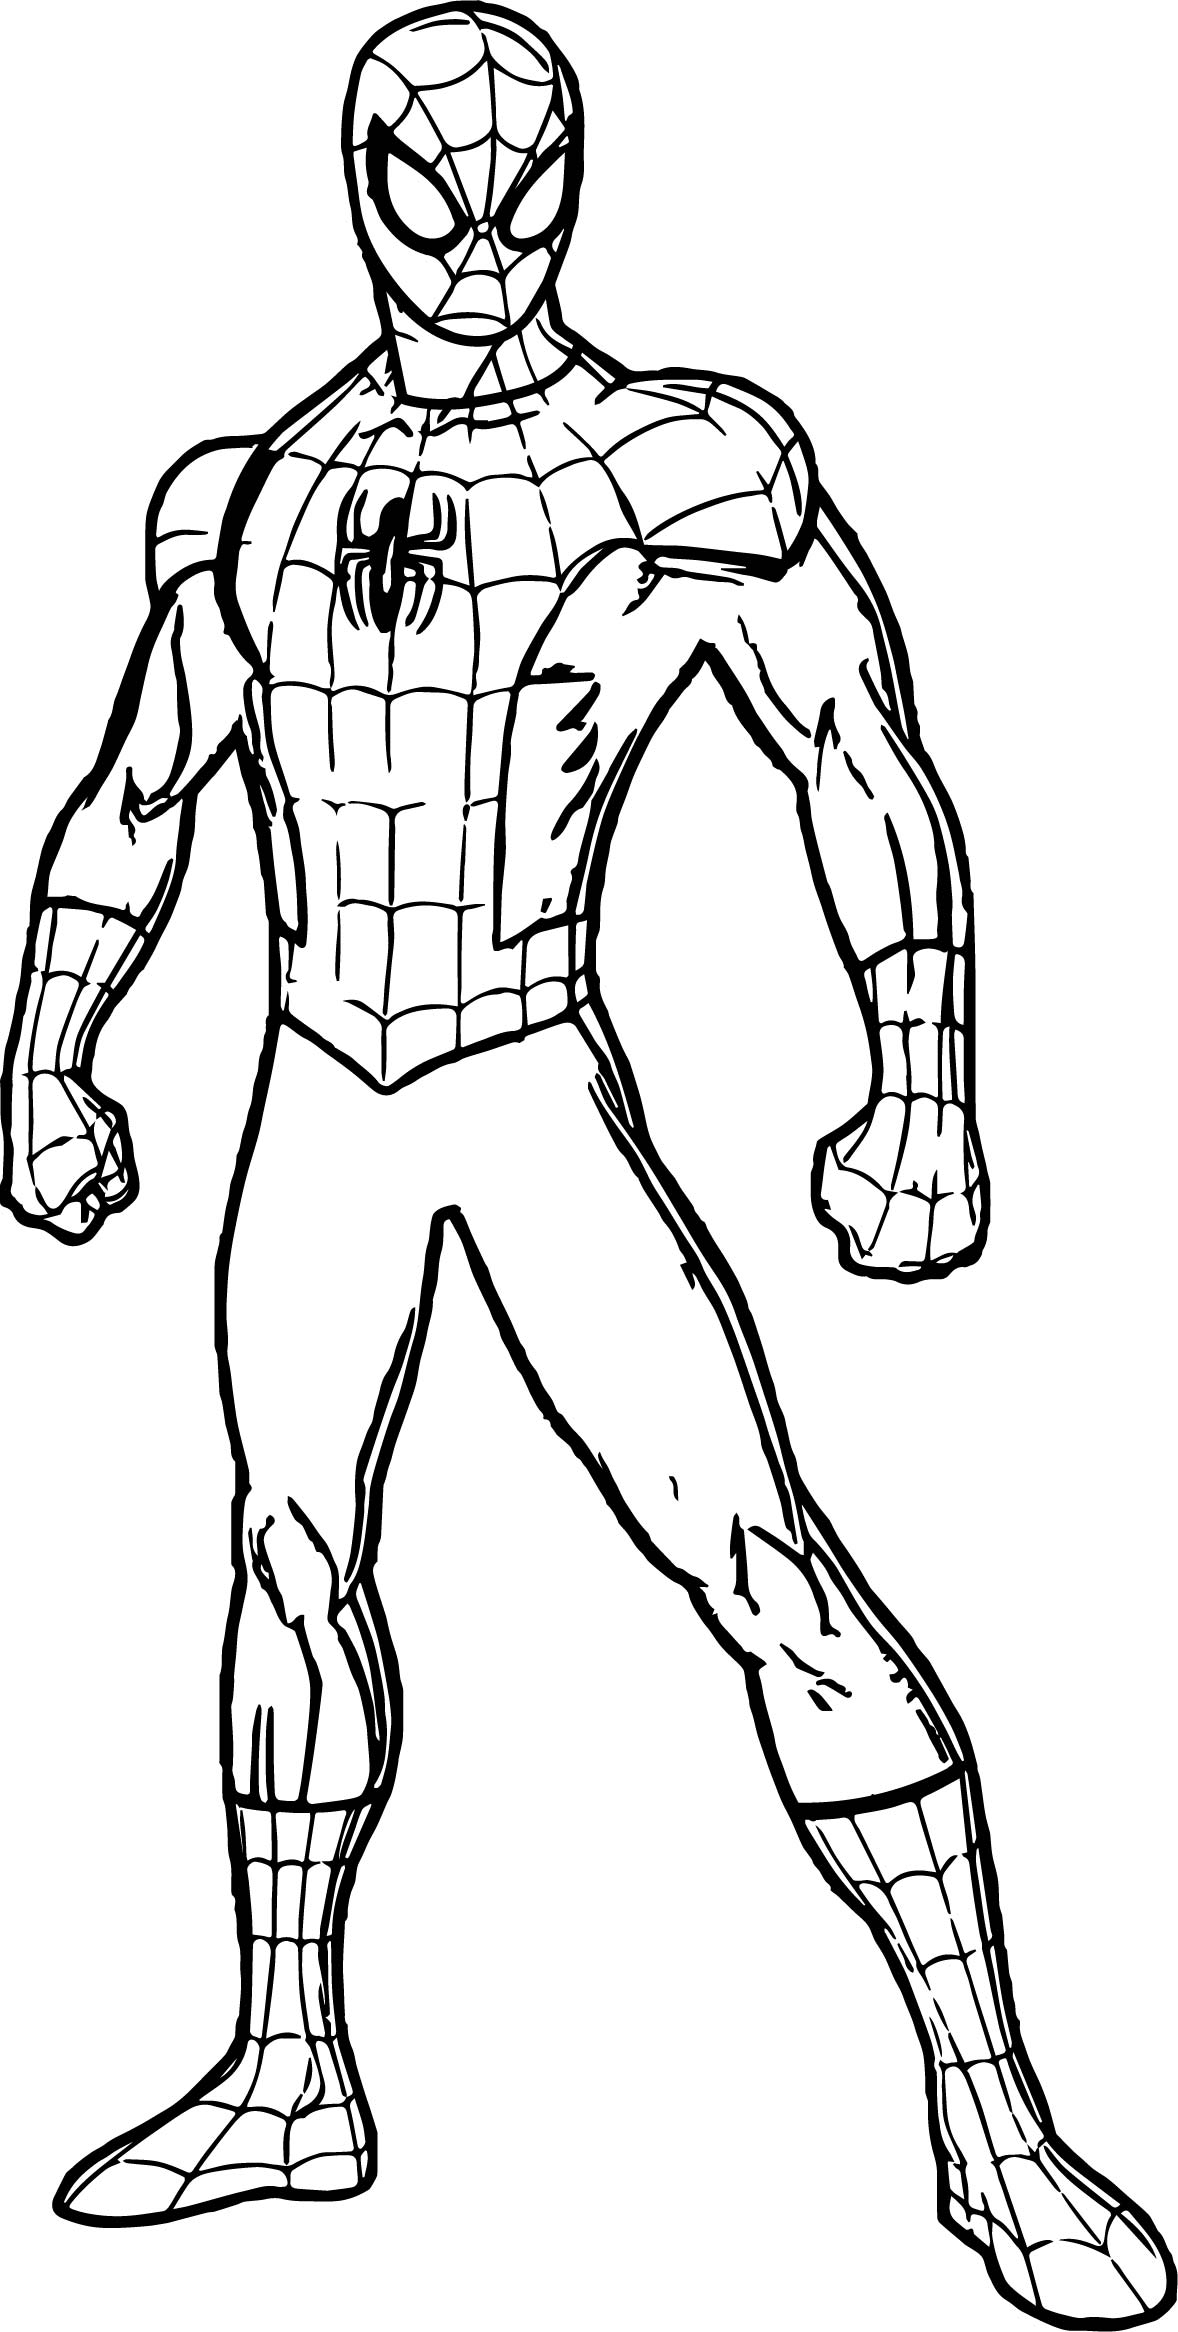 Spidey spider man coloring page for The amazing spider man 2 coloring pages